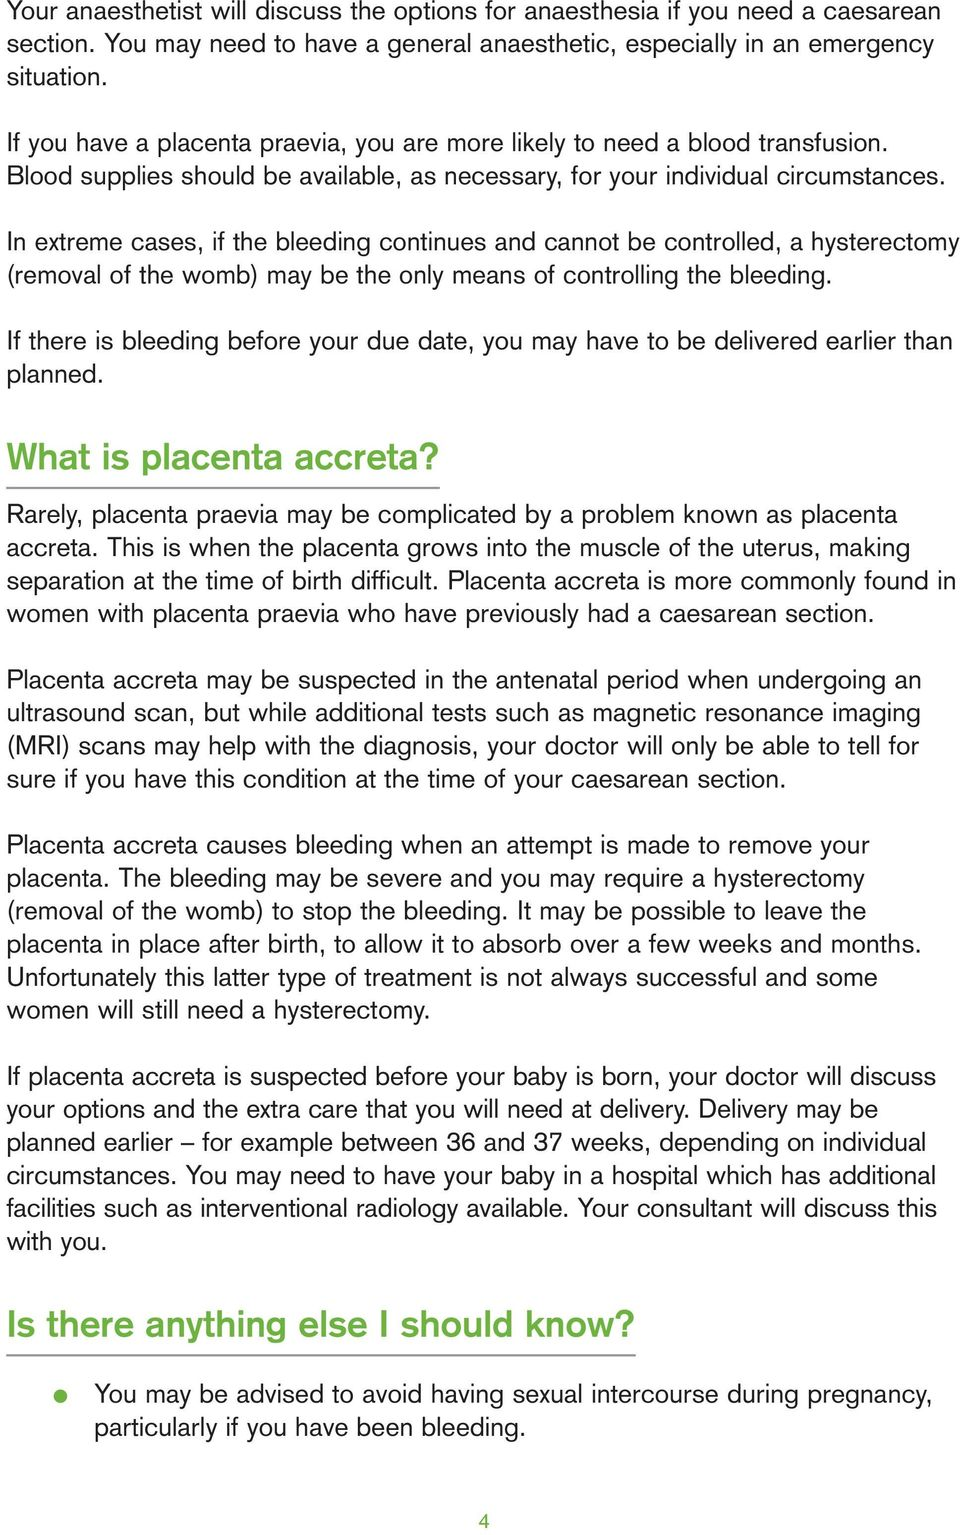 In extreme cases, if the bleeding continues and cannot be controlled, a hysterectomy (removal of the womb) may be the only means of controlling the bleeding.